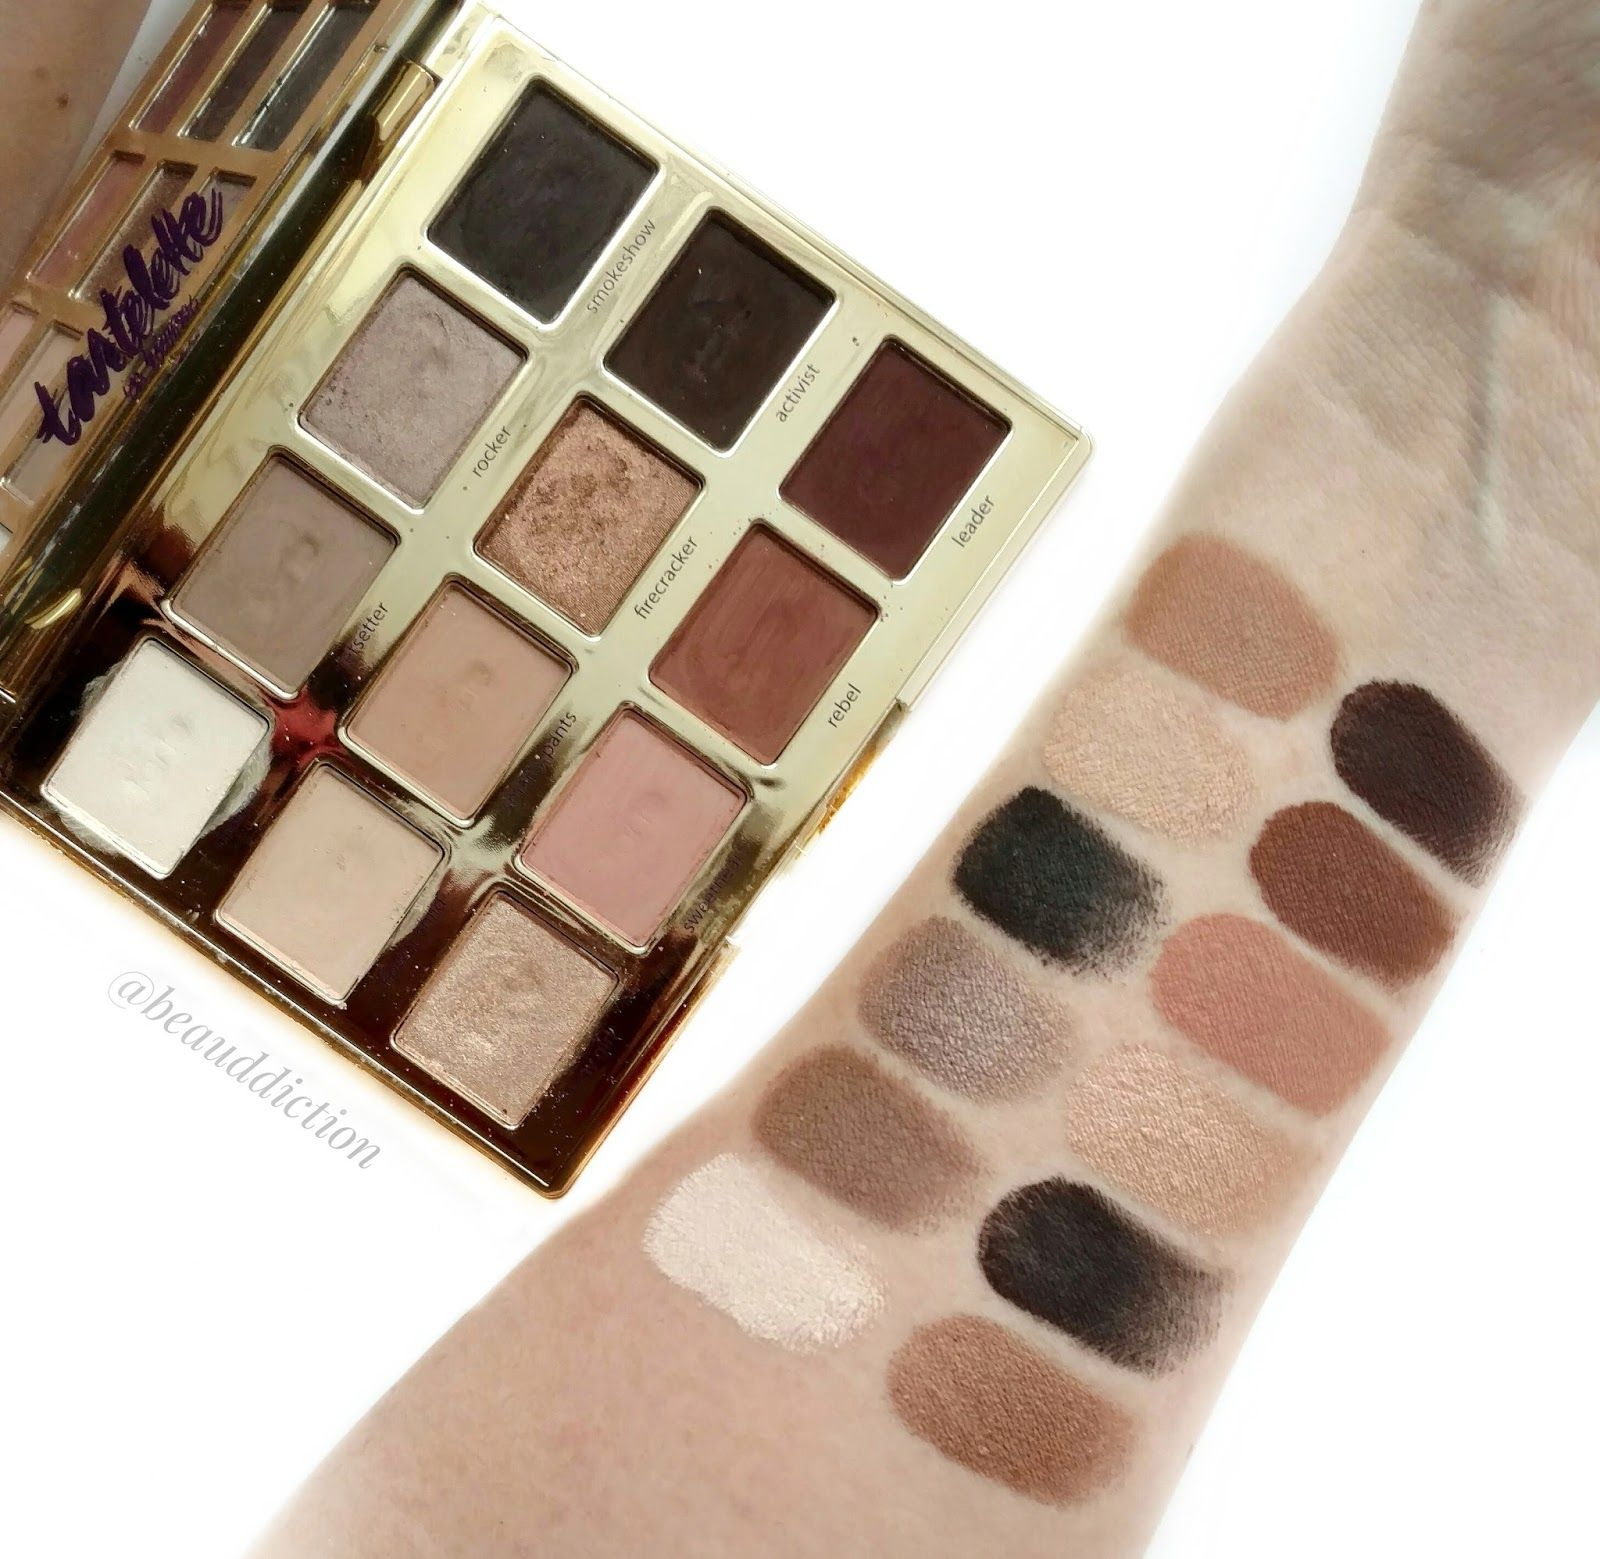 Tartelette Toasted Eyeshadow Palette by Tarte #15